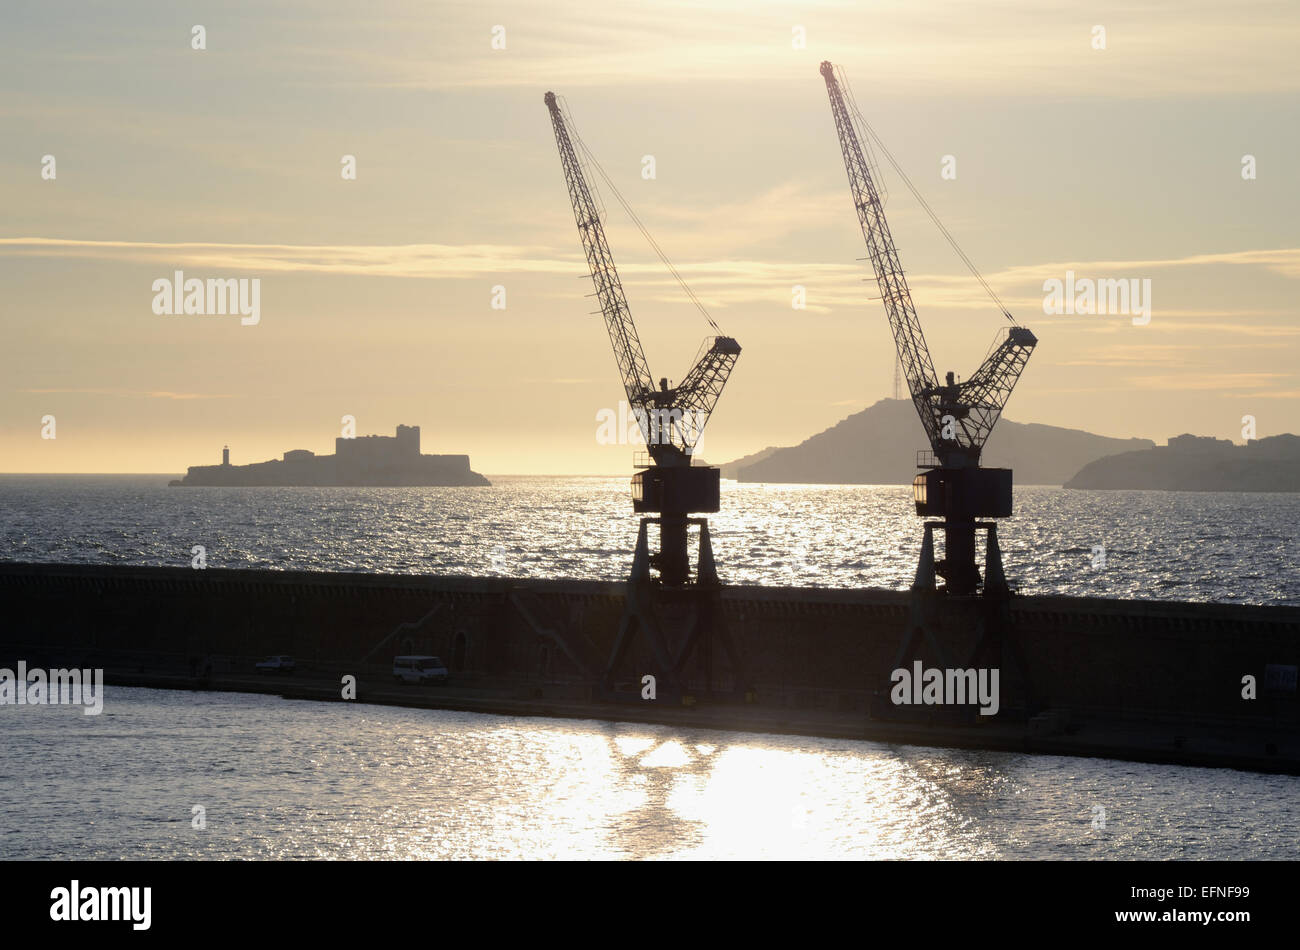 Outlines or Silhouette of Château d'If, Frioul Islands & Cranes of Marseille Port or Docks Marseille - Stock Image